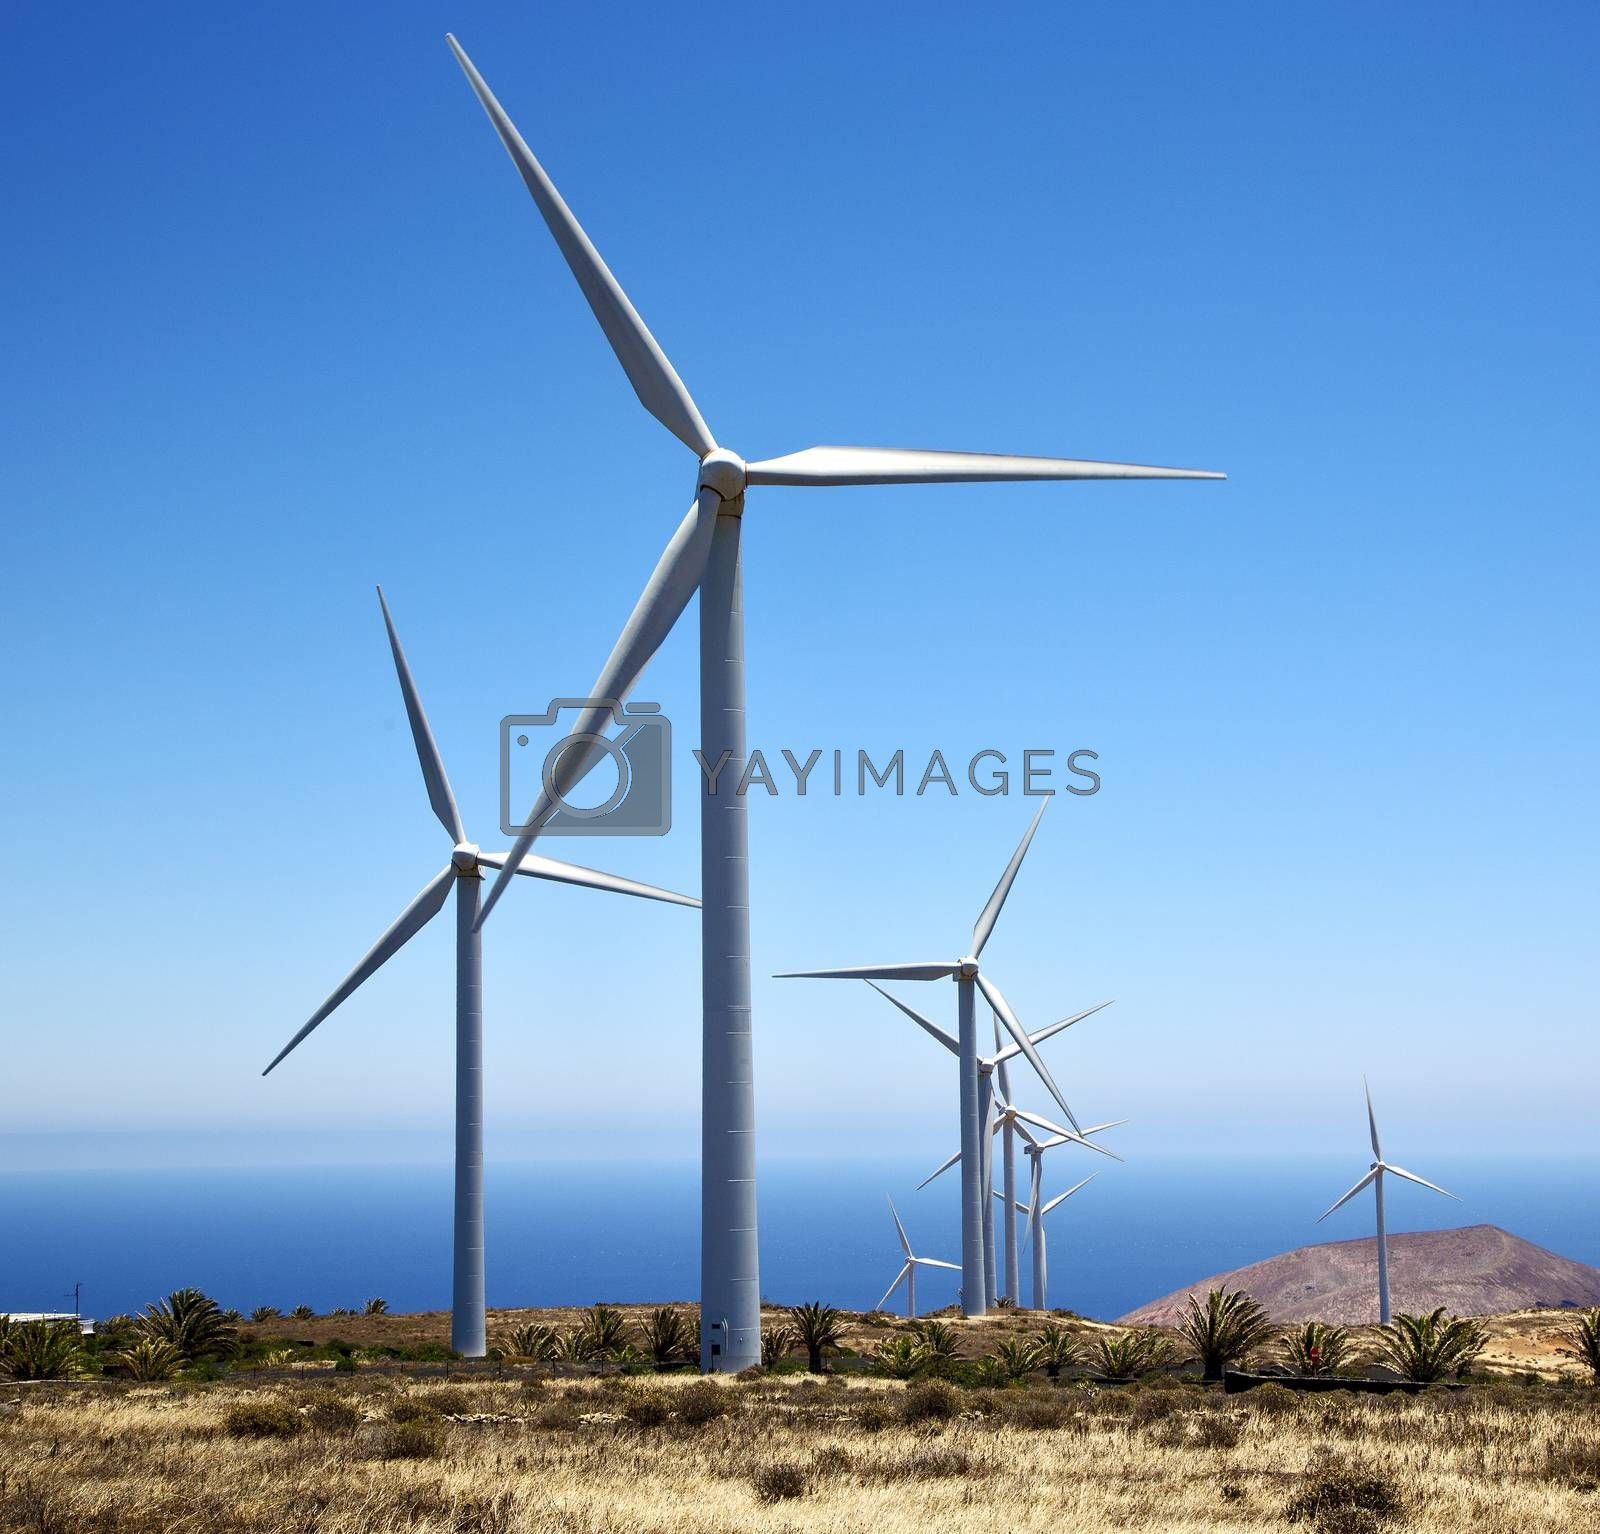 africa winturbines and the sky in  is by lkpro